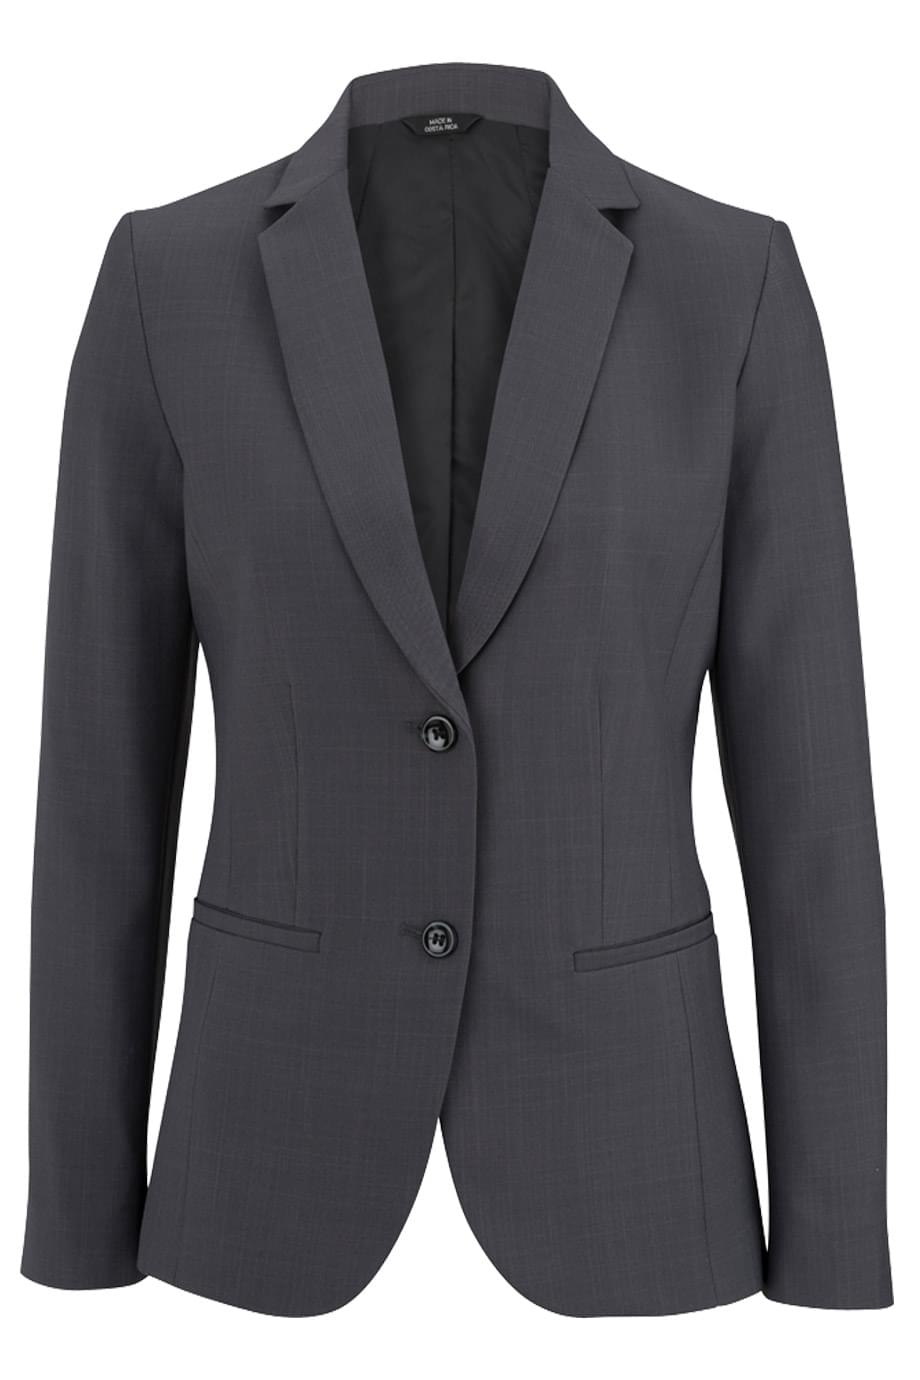 REDWOOD & ROSS® INTAGLIO SUIT COAT